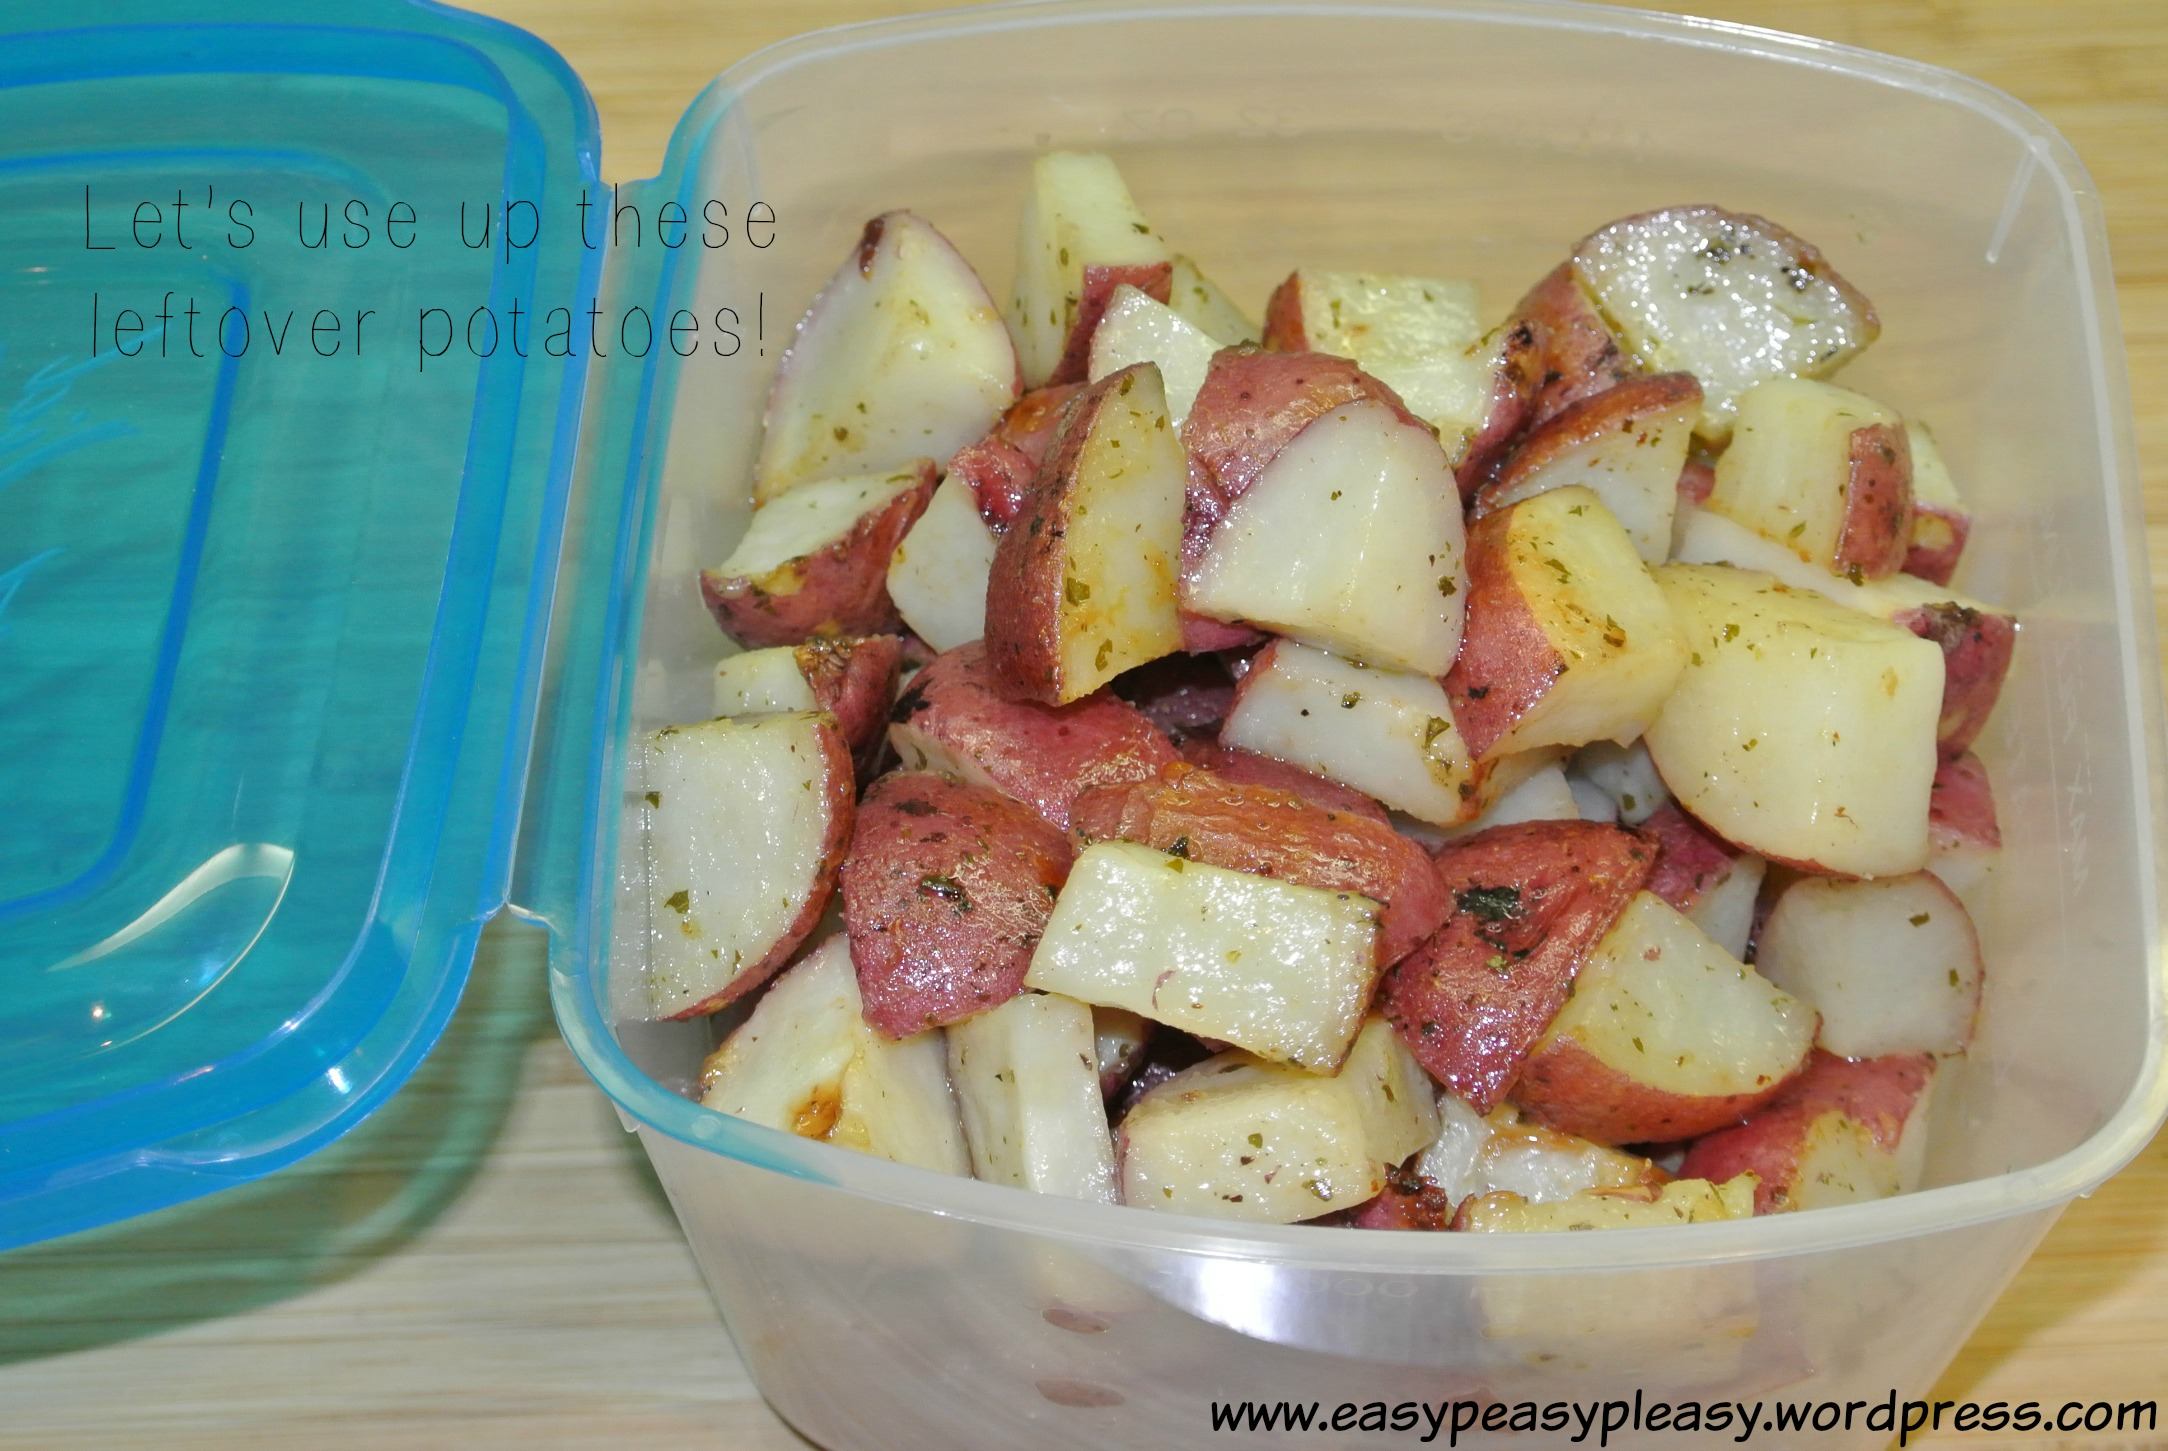 How to use up leftover potatoes as a double duty recipe idea at www.easypeasypleasy.wordpress.com